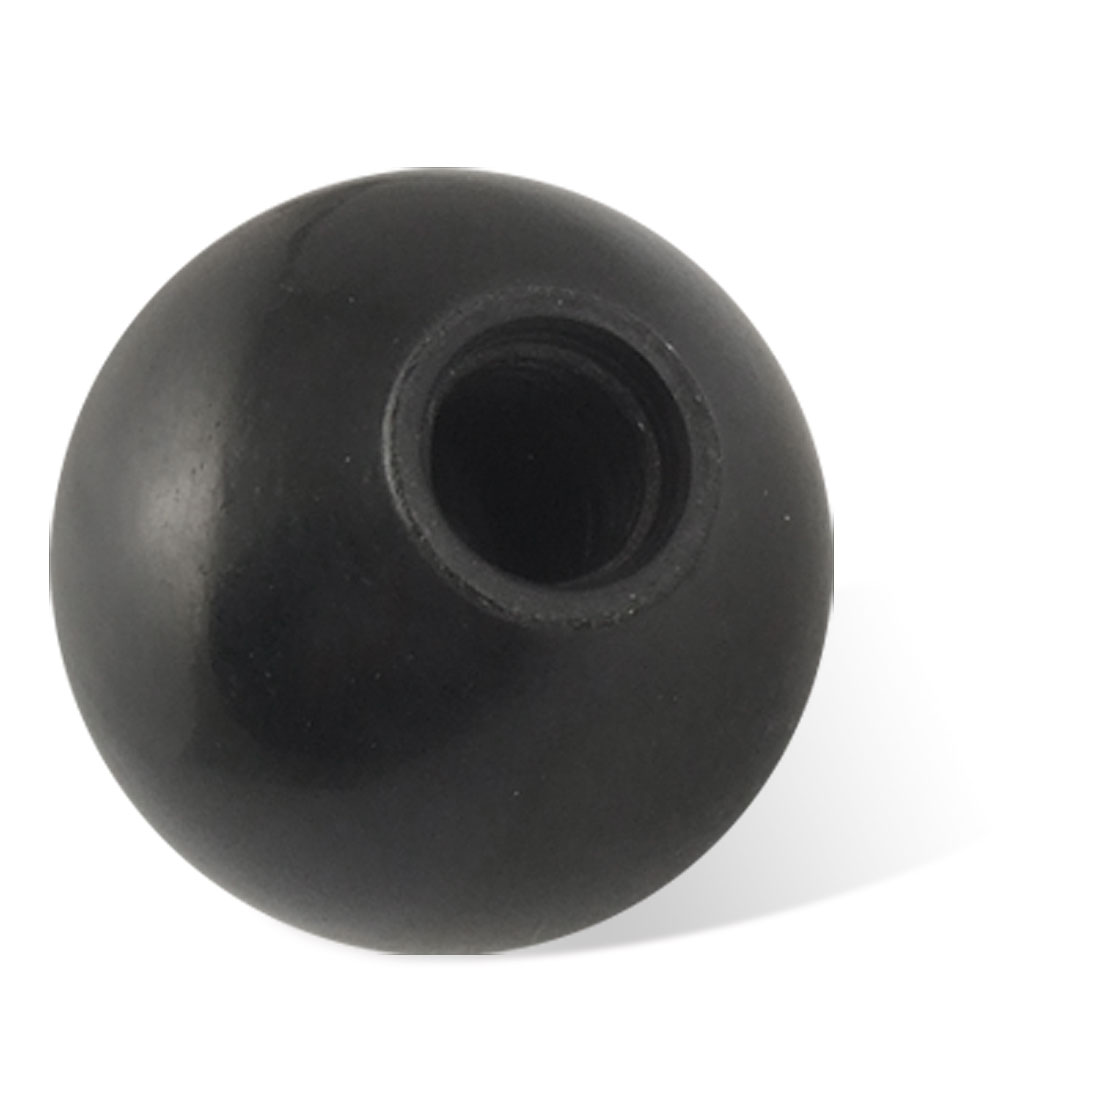 Replacement Black Plastic 35mm Diameter Ball Lever Knob